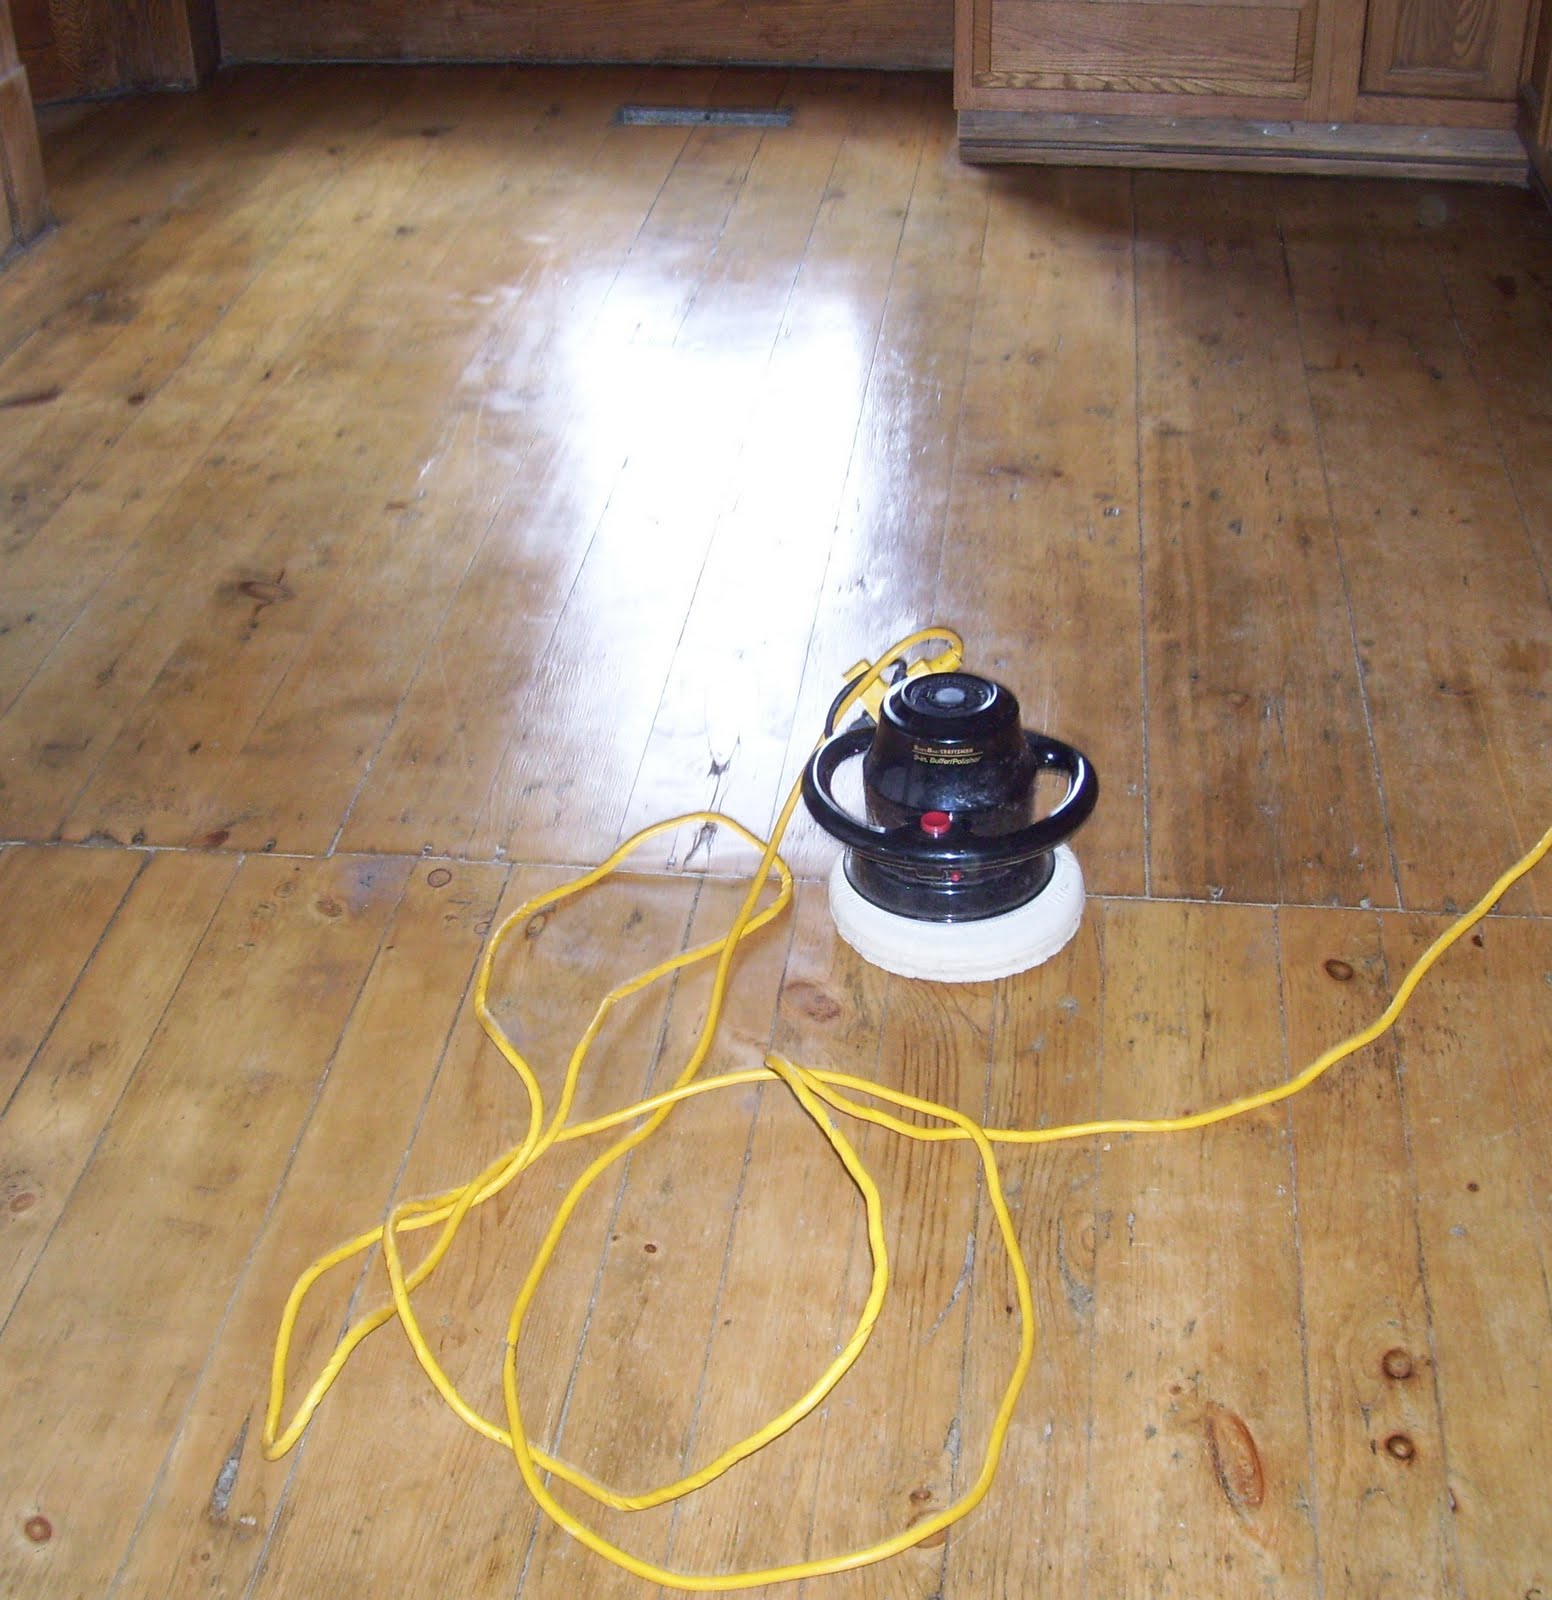 Seeking Center In An Old House And Life Old Wood Floors